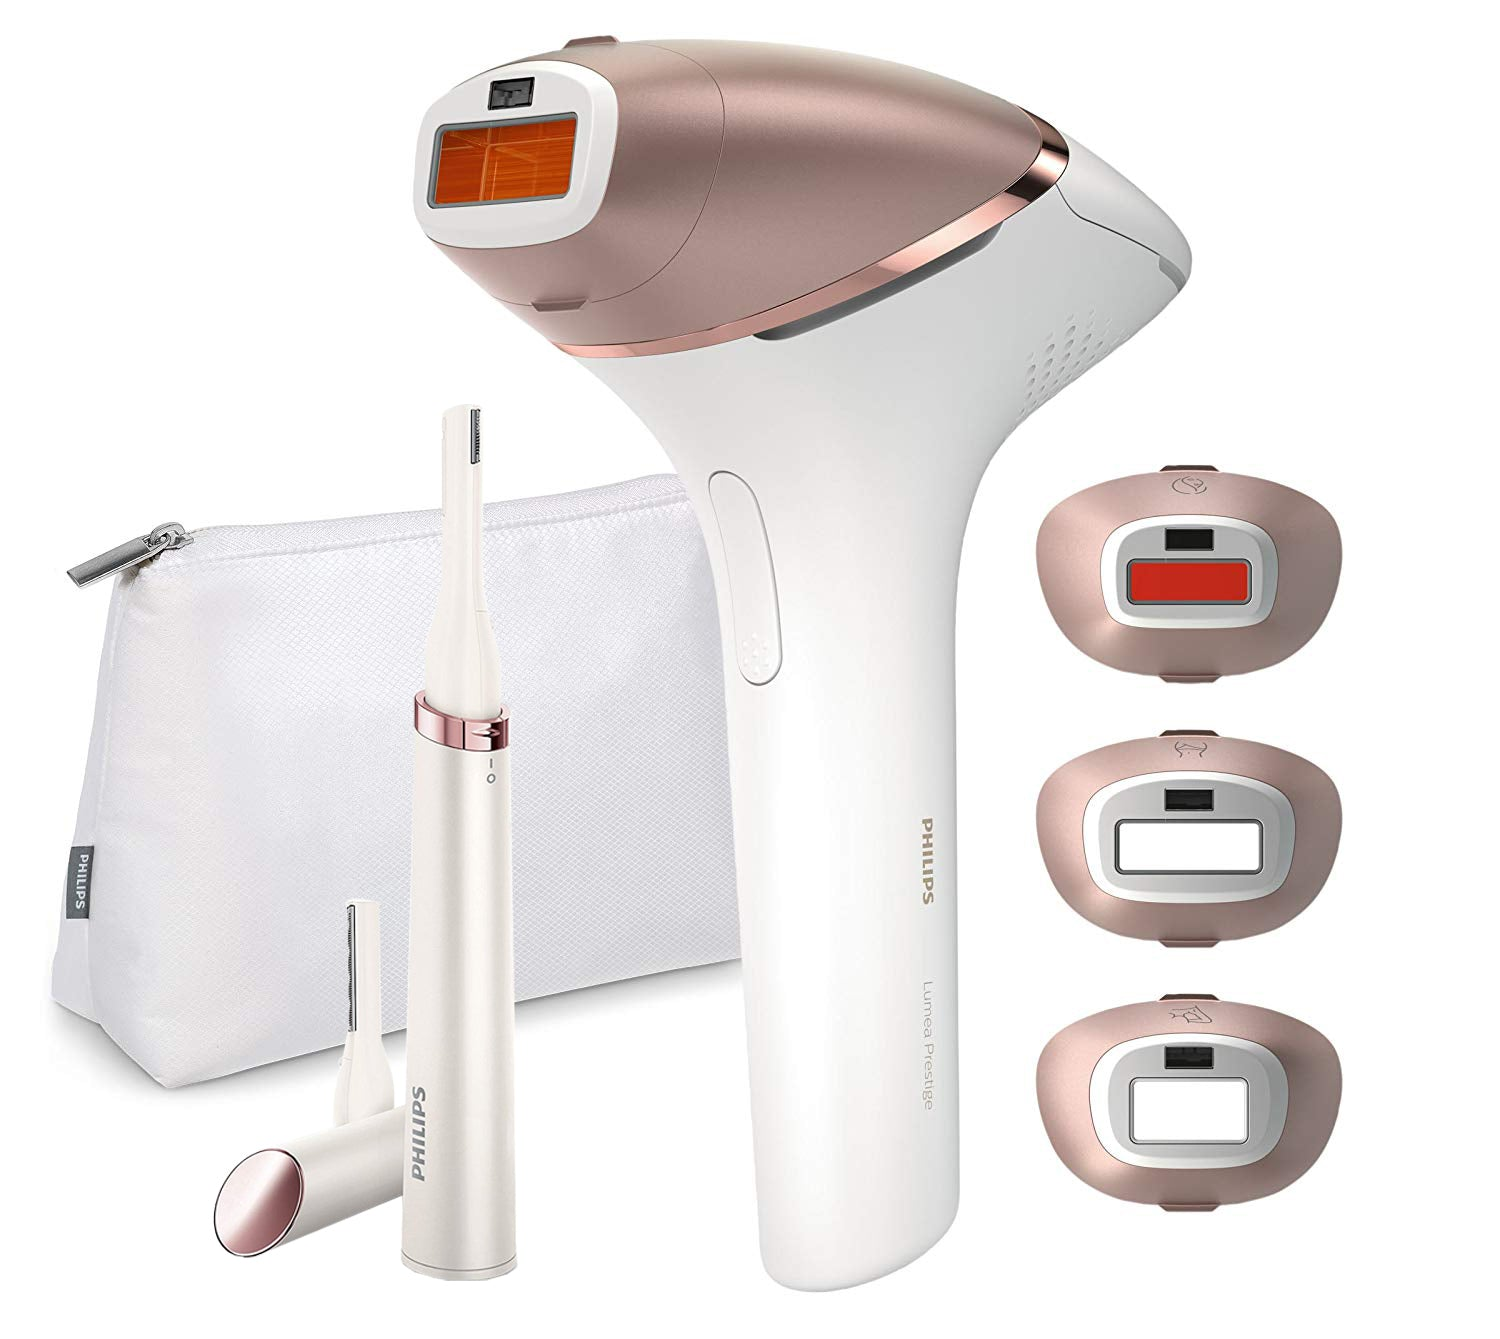 PHILIPS Lumea BRI956/60 Prestige IPL Hair Removal Tool PLus 1 Touch-Up Pen Trimmer